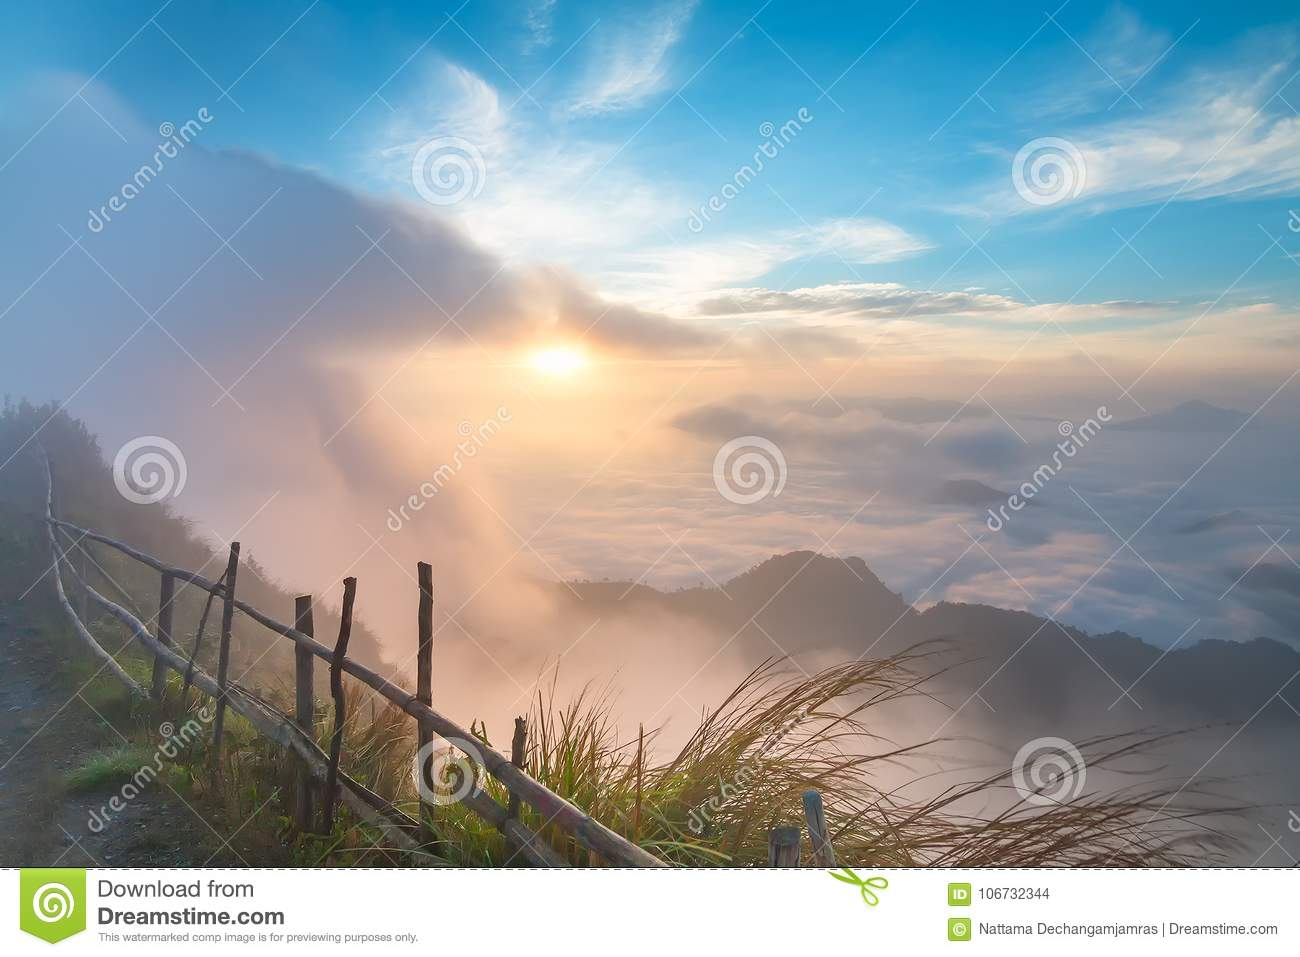 Beautiful Landscape and the Mist in the Morning in Thailand